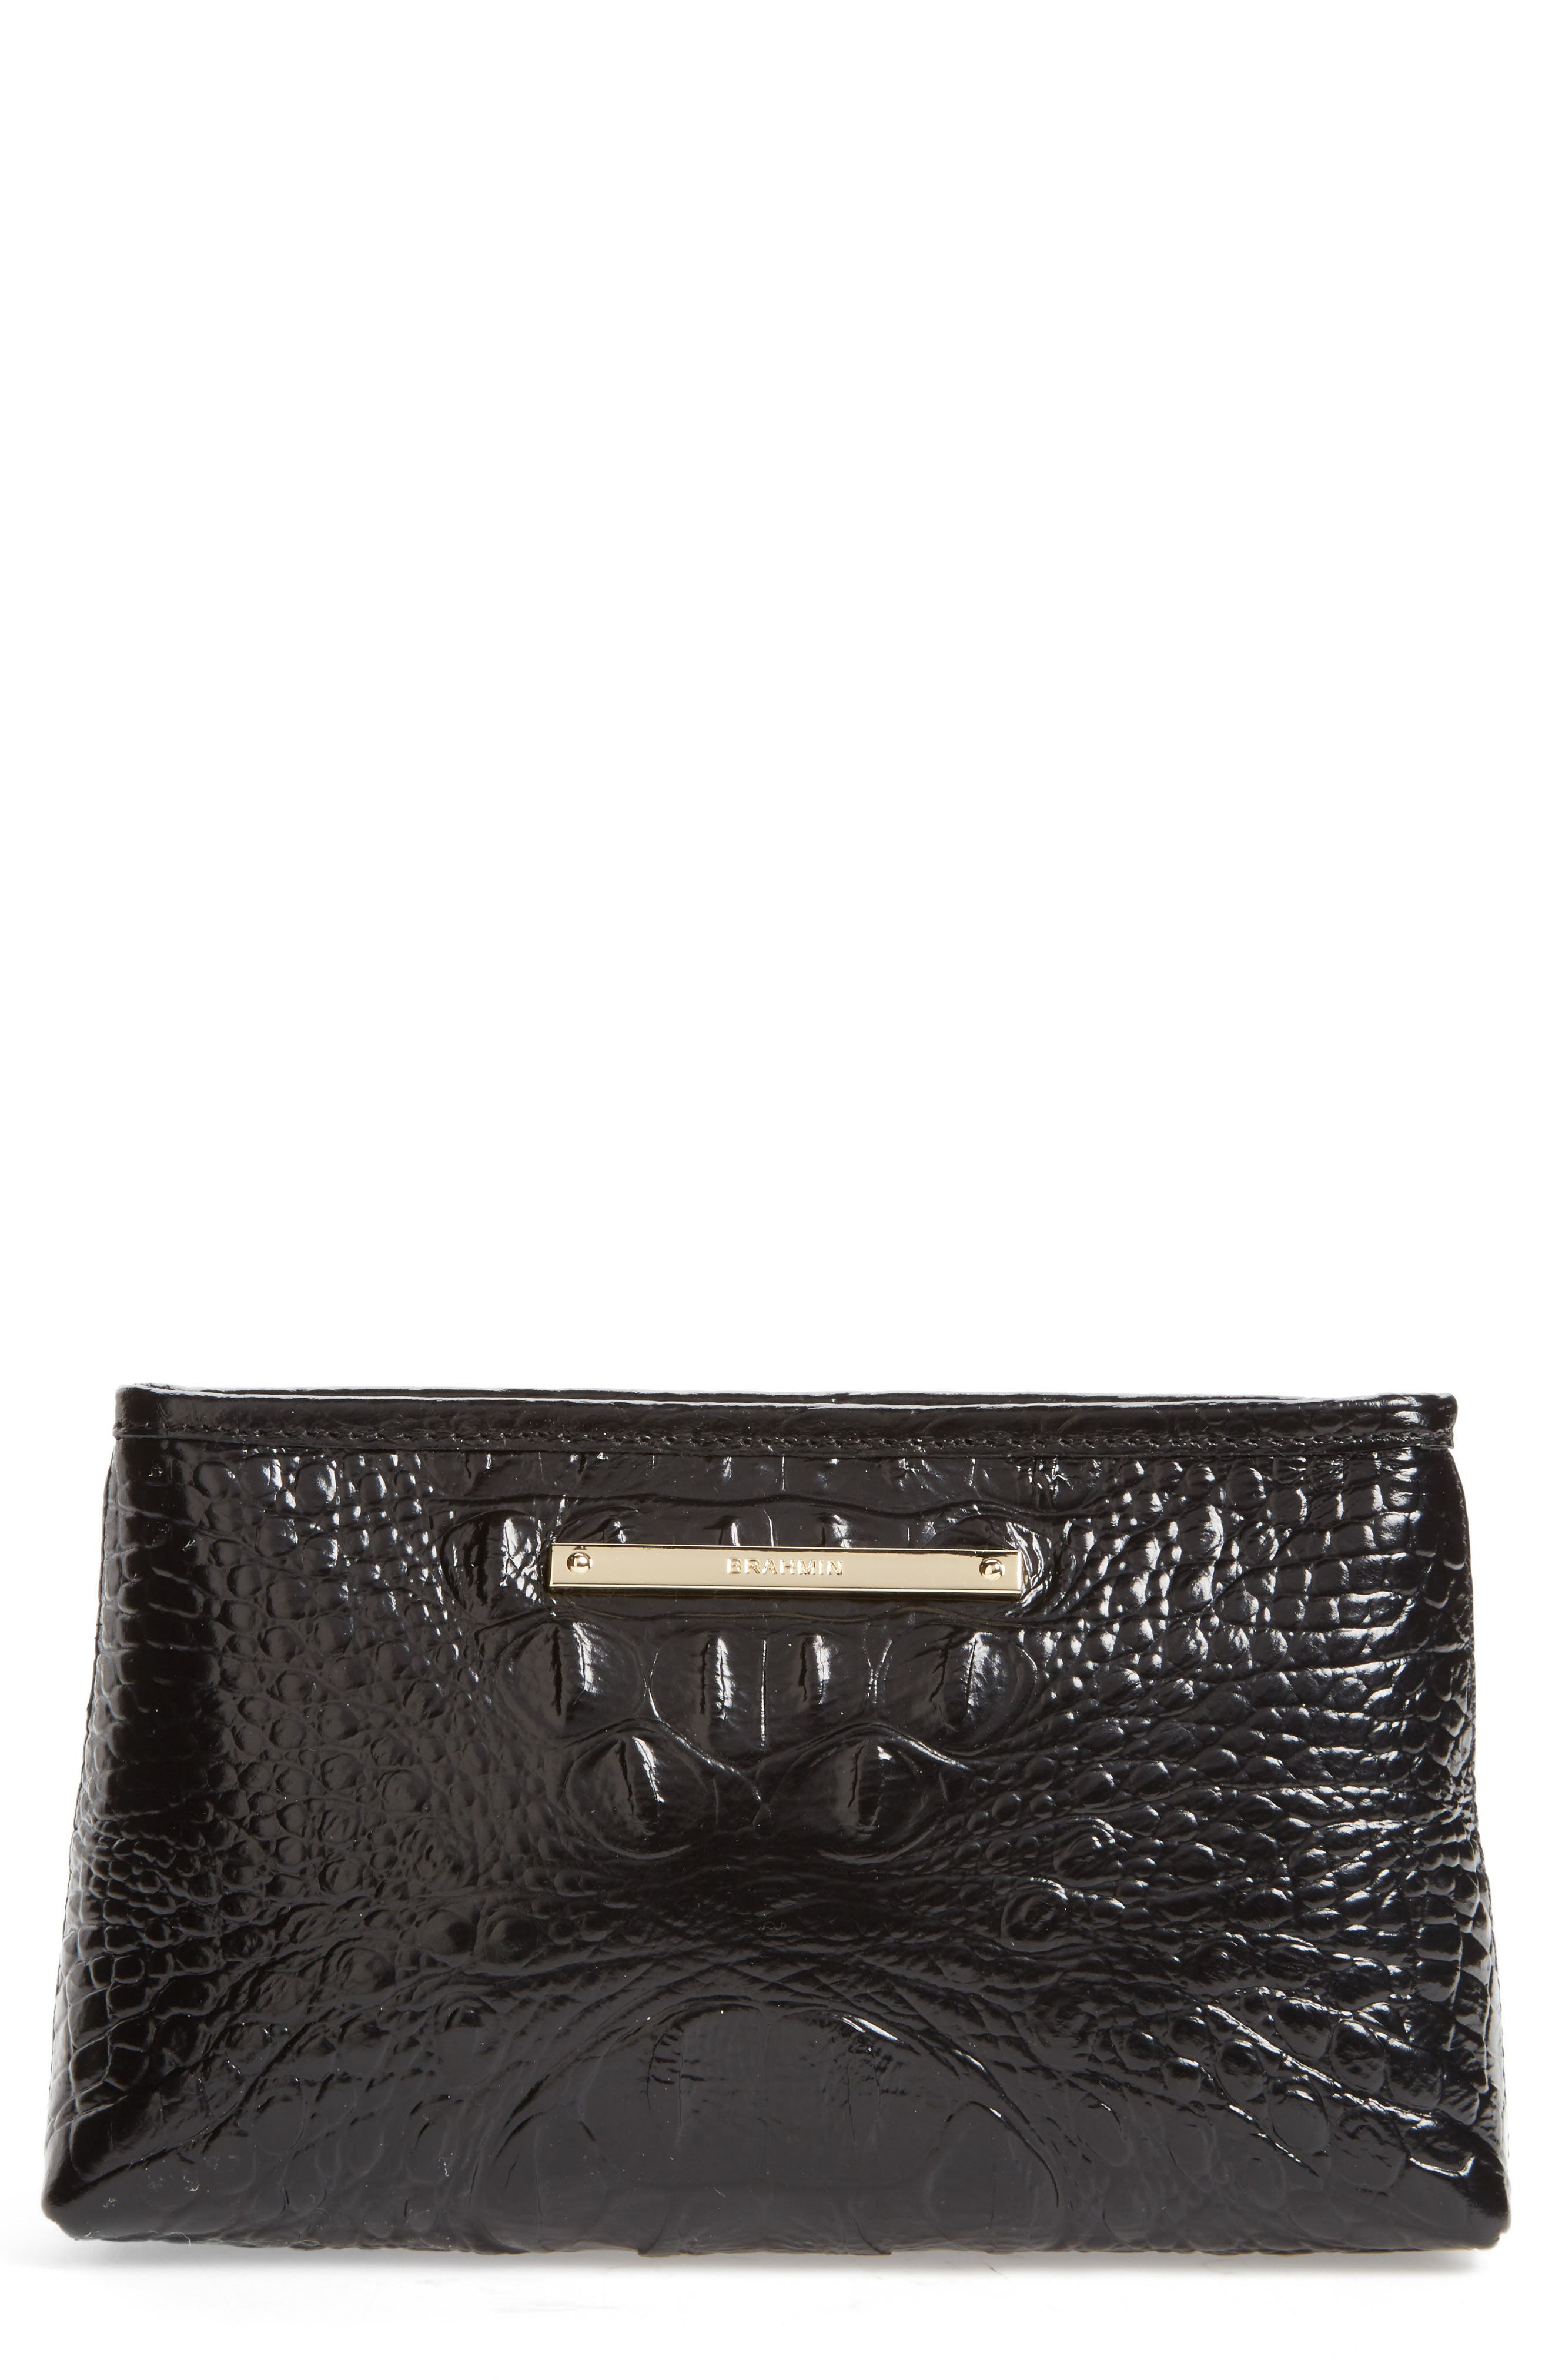 Main Image - Brahmin Marney Croc Embossed Zip Pouch